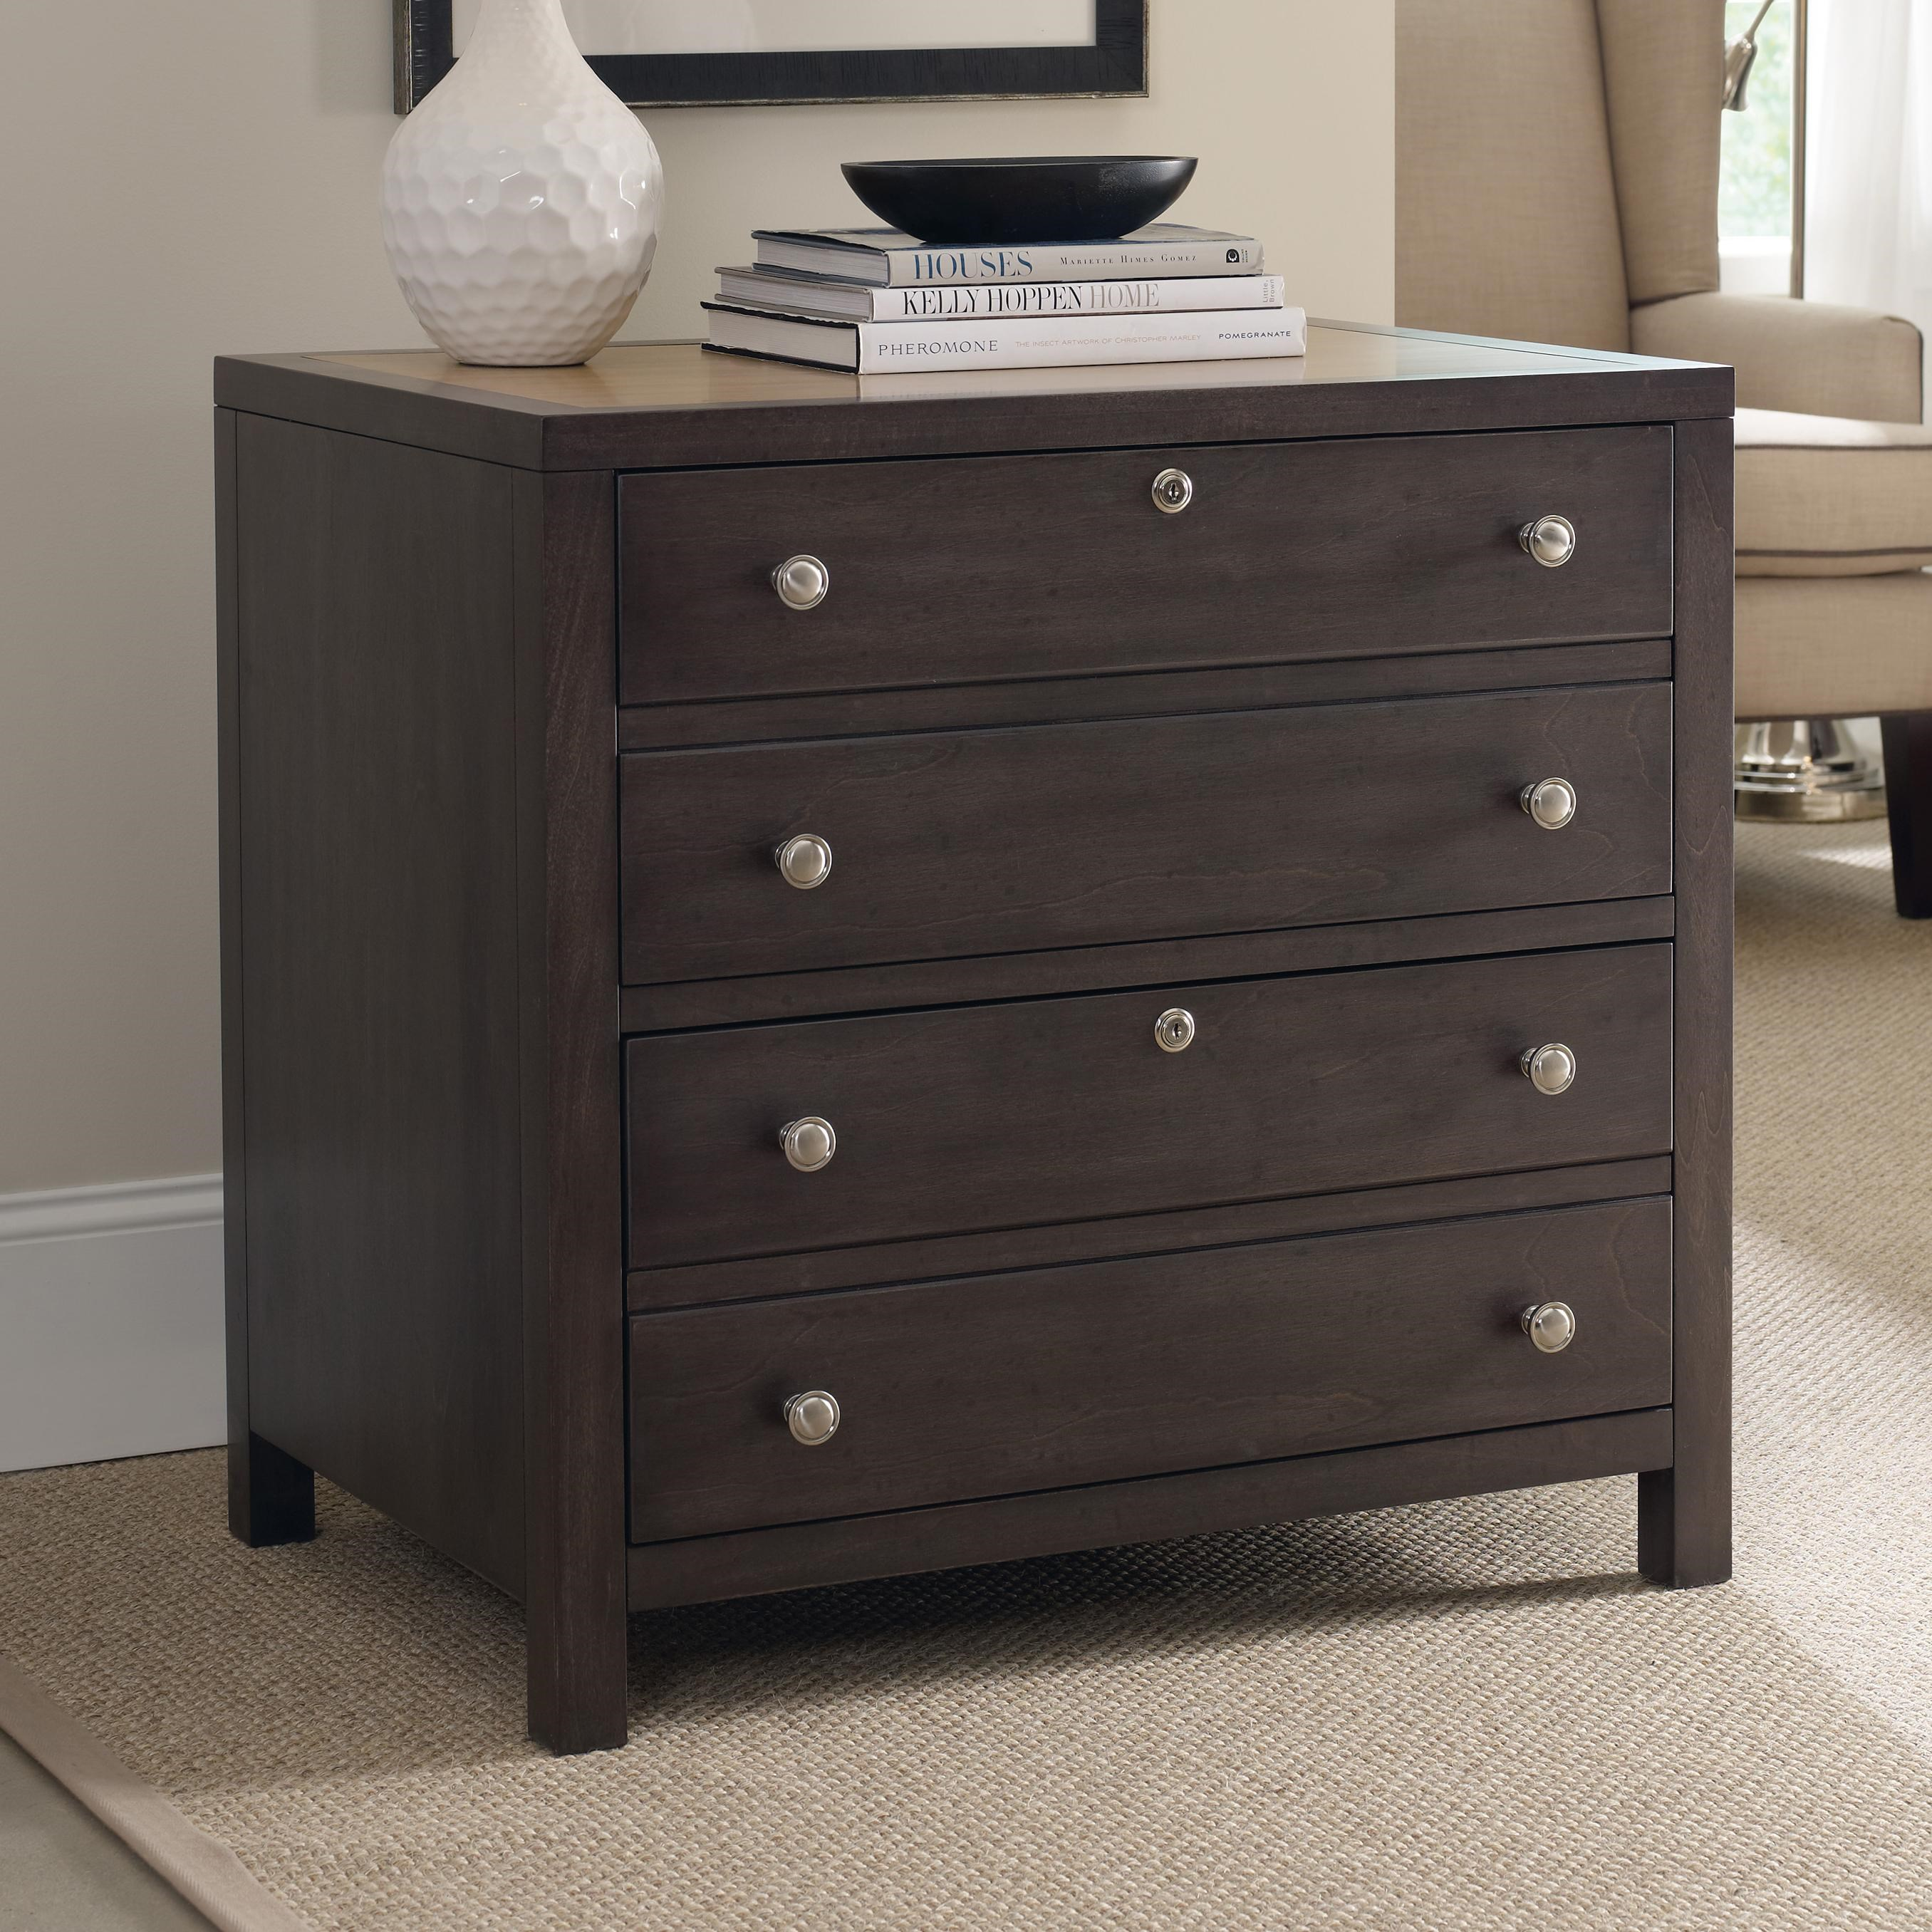 Charmant Hooker Furniture South Park Lateral File Cabinet With 2 Locking Drawers